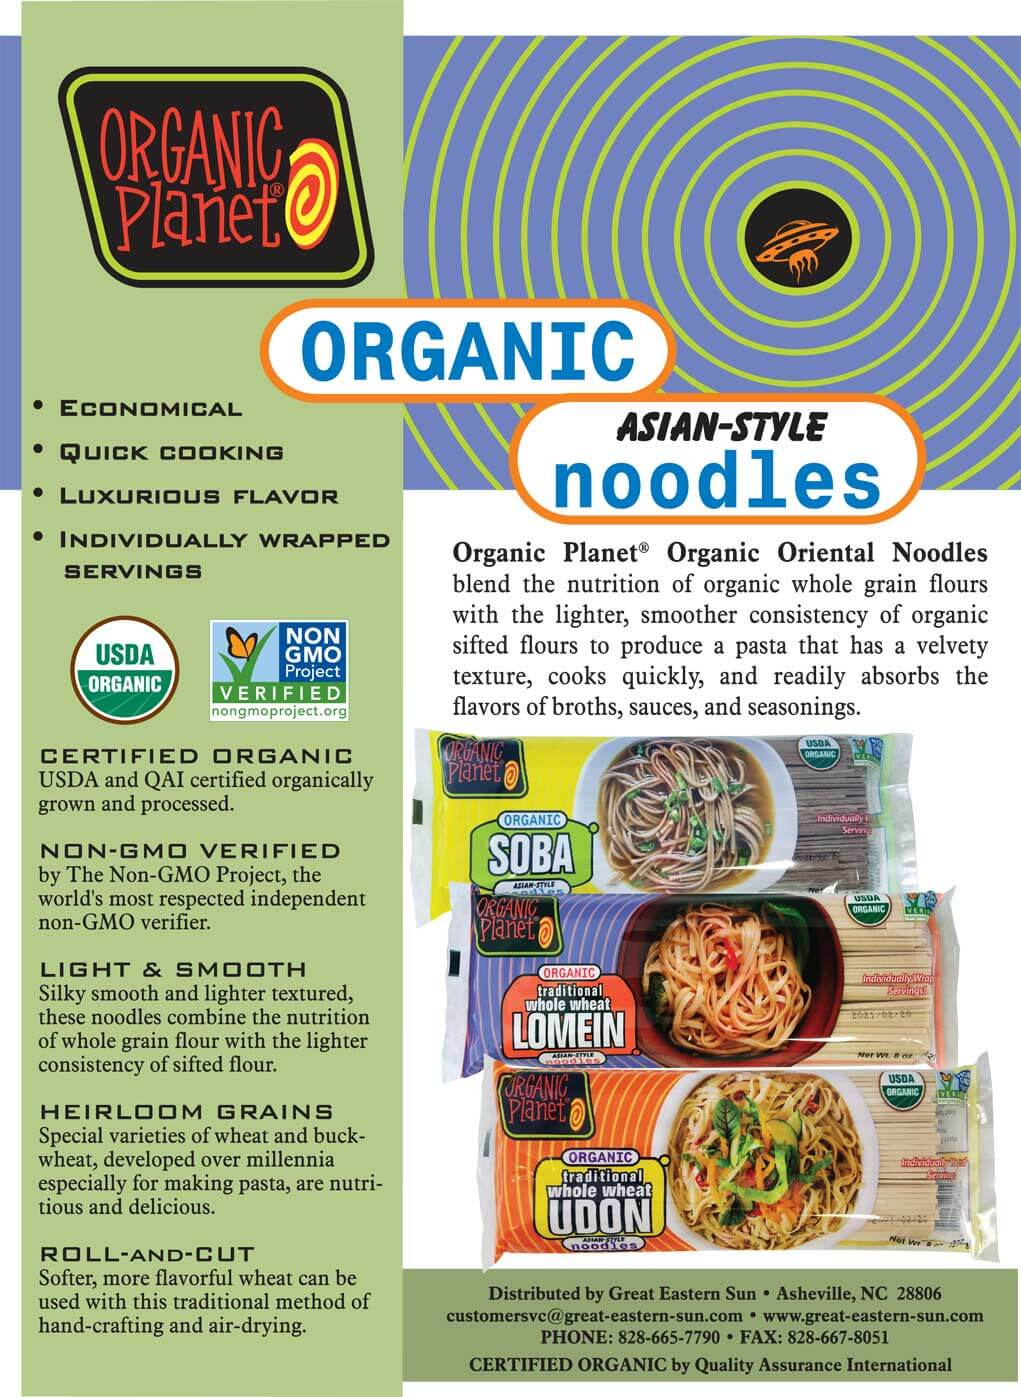 Organic Planet Organic Asian-Style Noodles Flyer